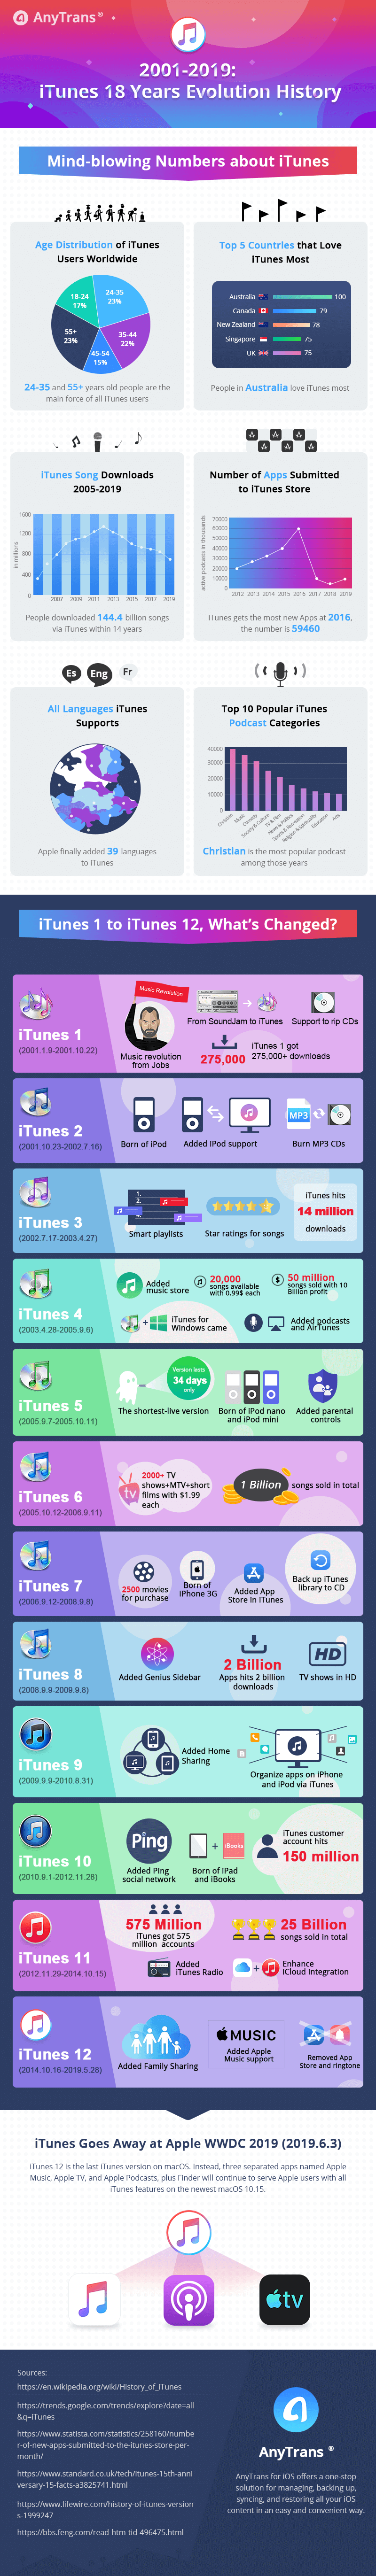 iTunes history of evolution 18 Years #infographic